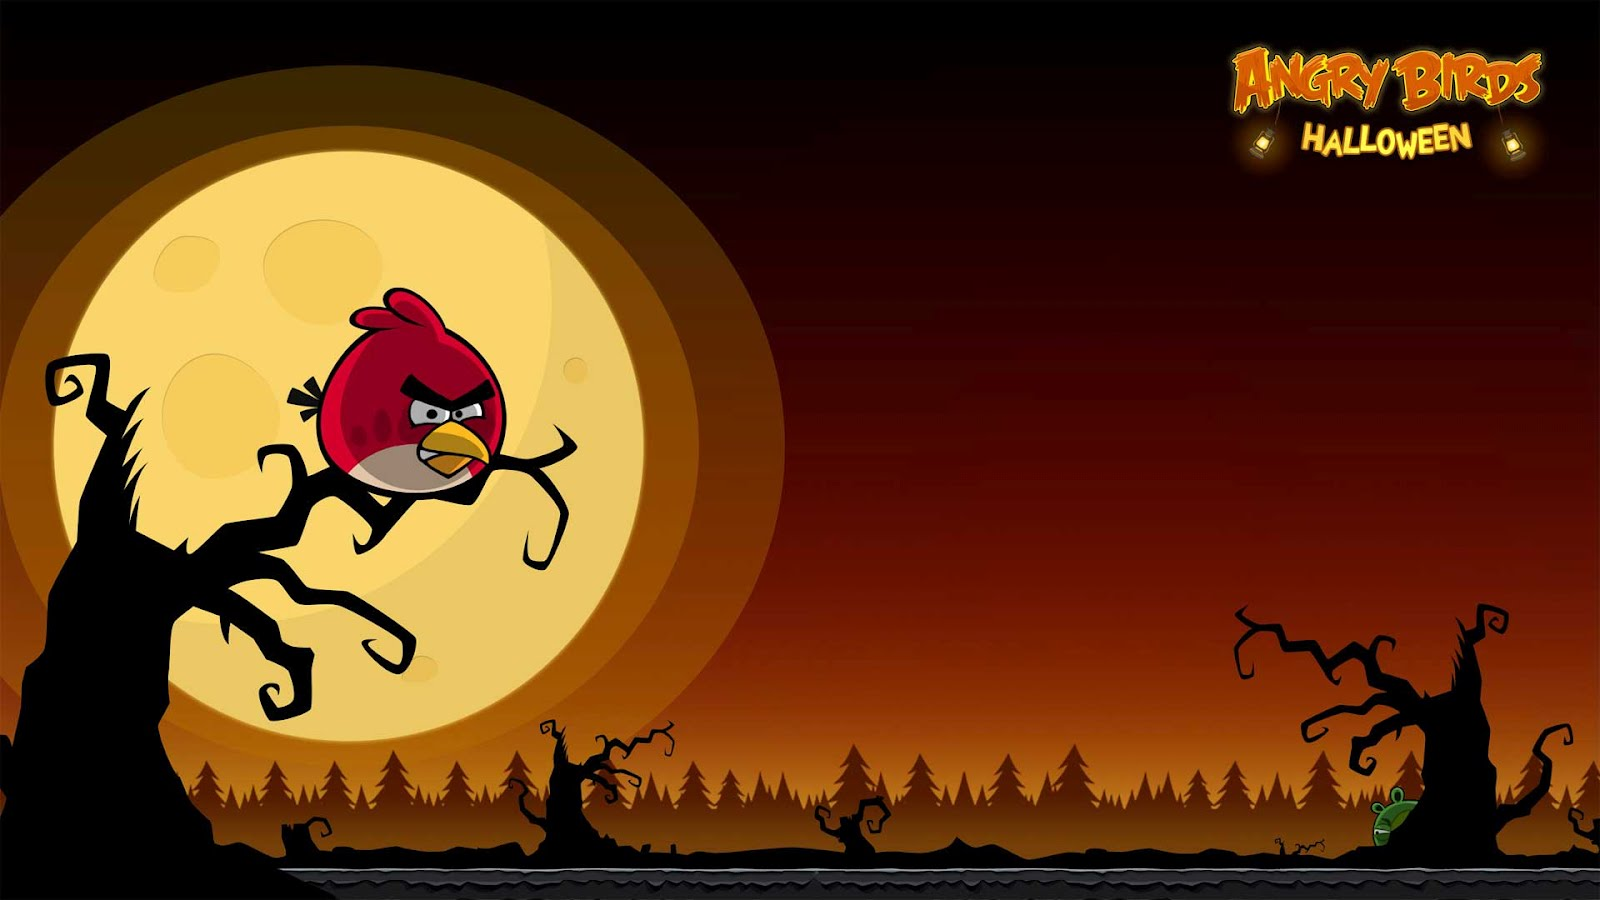 http://1.bp.blogspot.com/-Ar4NI0g32xM/T6eX_YJ2znI/AAAAAAAABNw/NzwYqCLHlRw/s1600/angry-birds-powerpoint-background-5.jpg